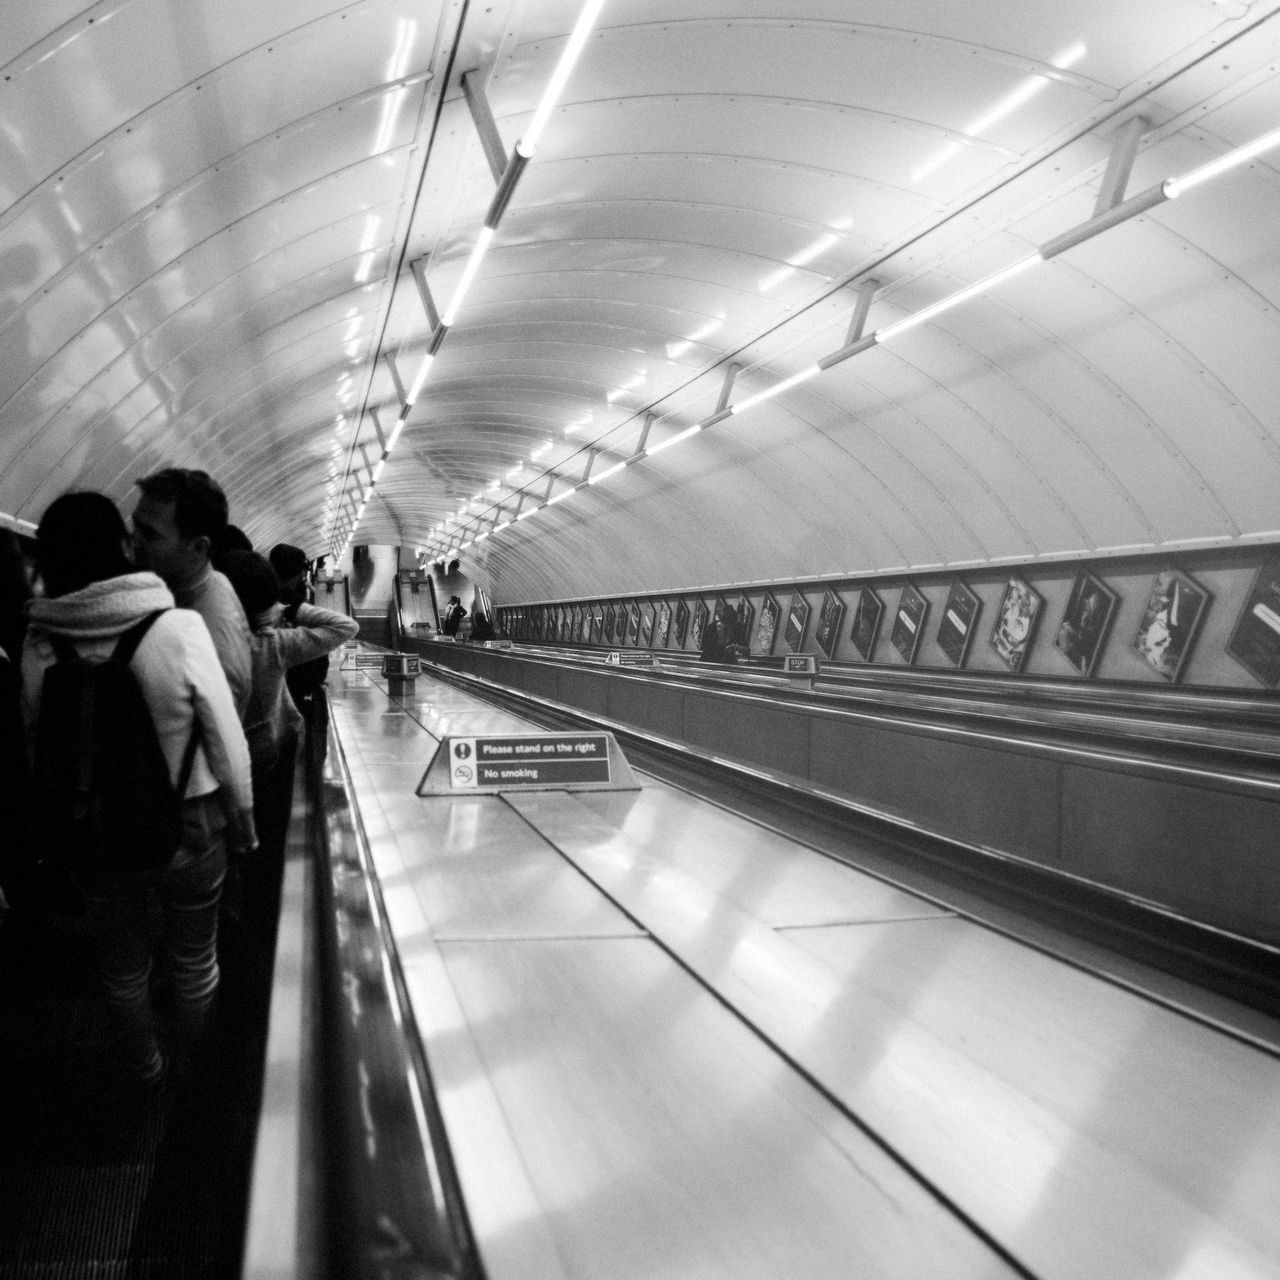 London In Square BN Black And White Black And White Collection  Blackandwhite Photography Blurry Flare Grainy Images IPhone IPhone 5S Iphone 6 IPhoneography Lifeisbeautiful Lifestyles London Metro Station People Of EyeEm People Photography Showcase March Squareinstapic Street Life Street Photography Streetphoto_bw Streetphotography Underwater Photography